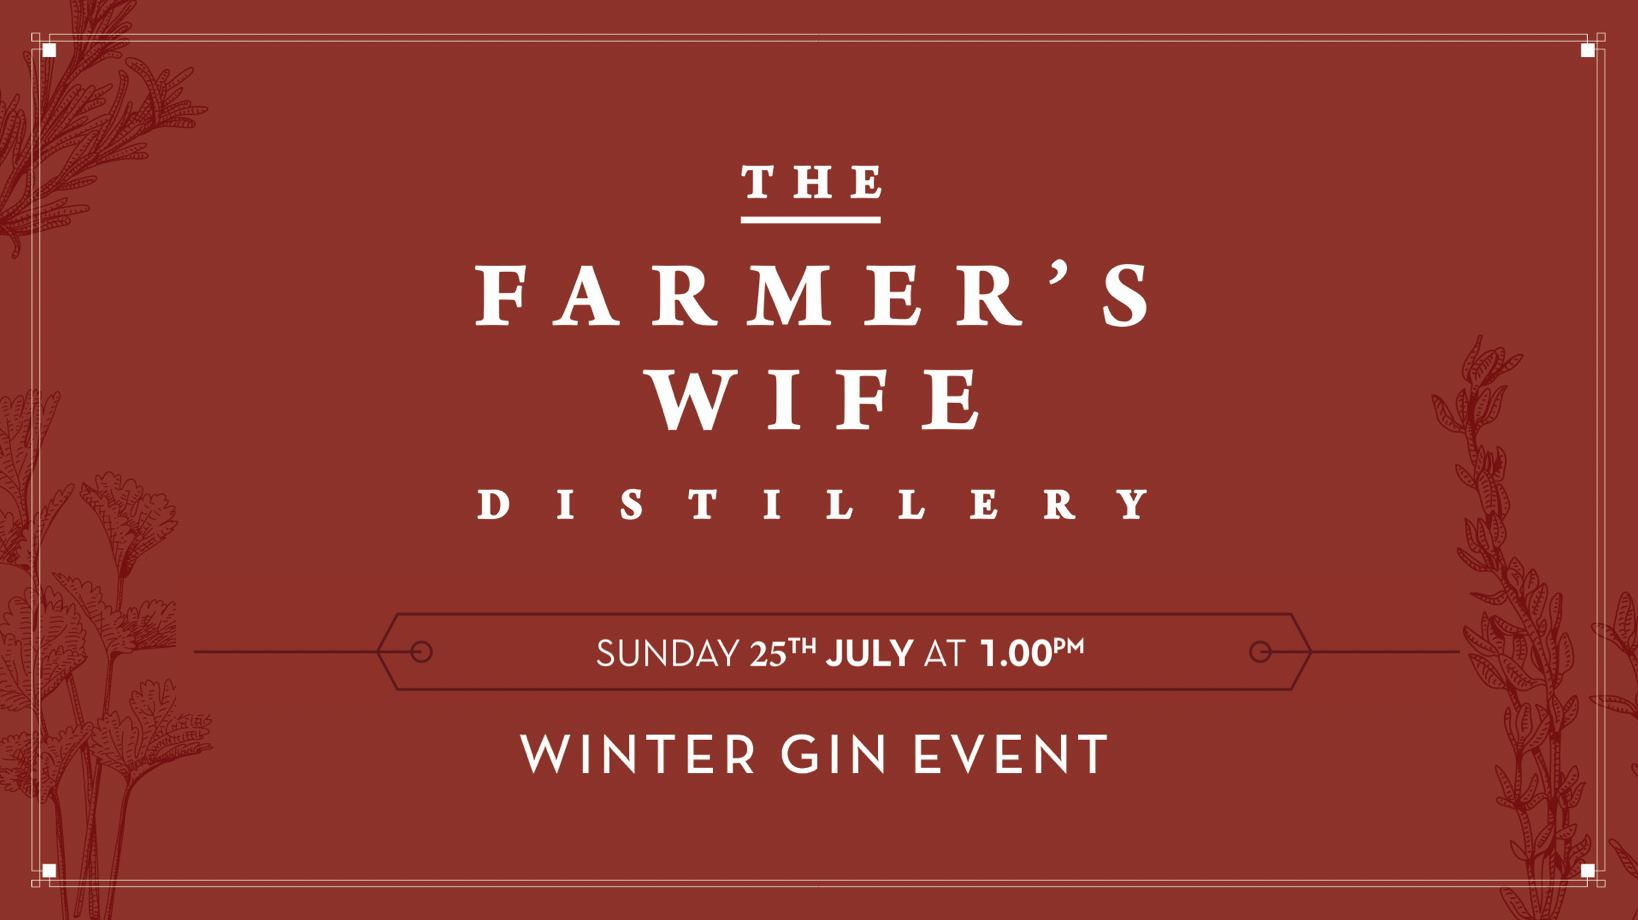 The Farmer's Wife Luncheon at The Nags Head